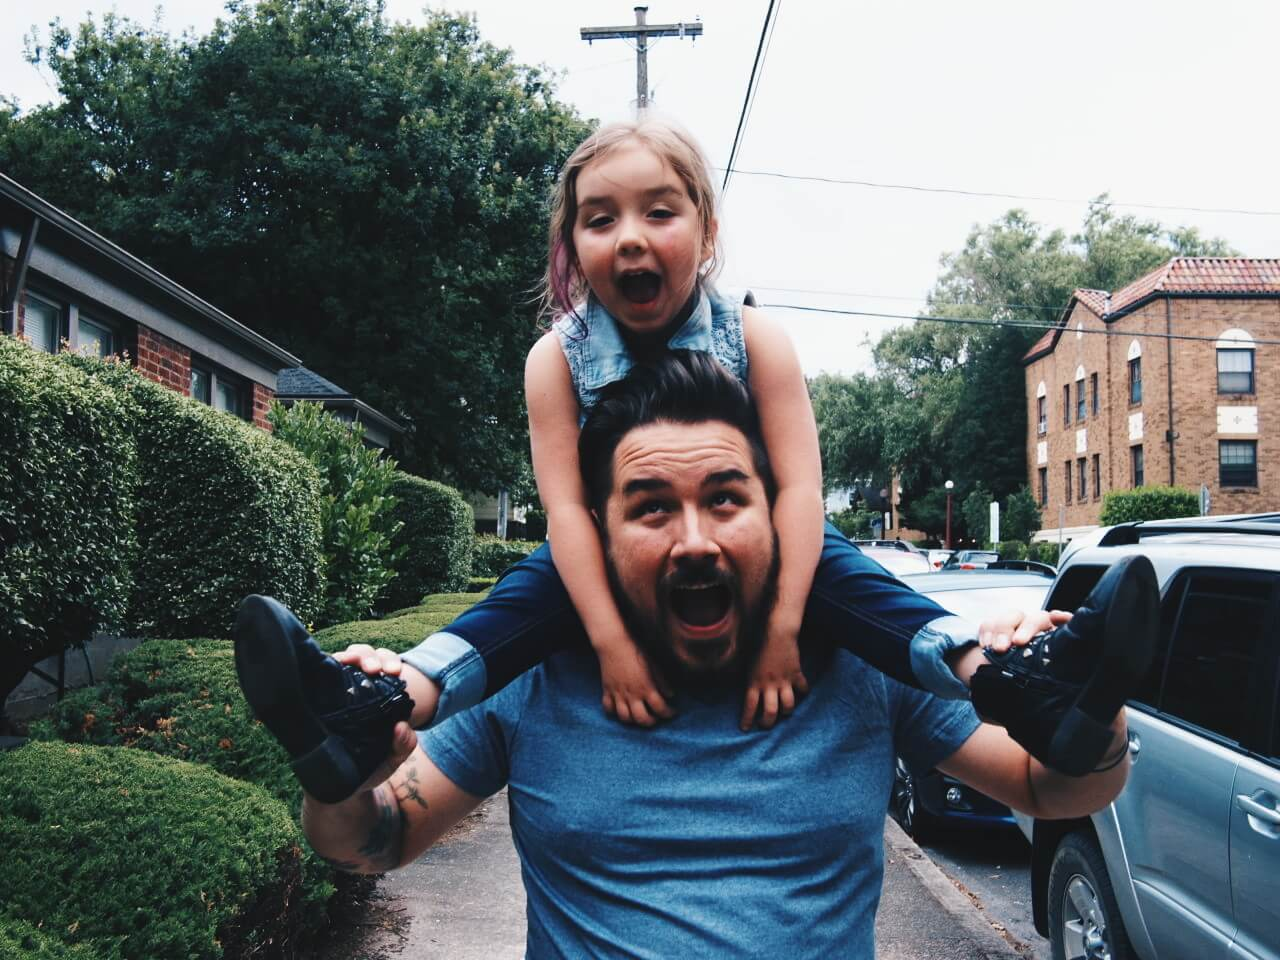 family-person-daughter-parent-father-happy-dad-excited-parenting-daddy-family-fun_t20_JaooLQ (1)